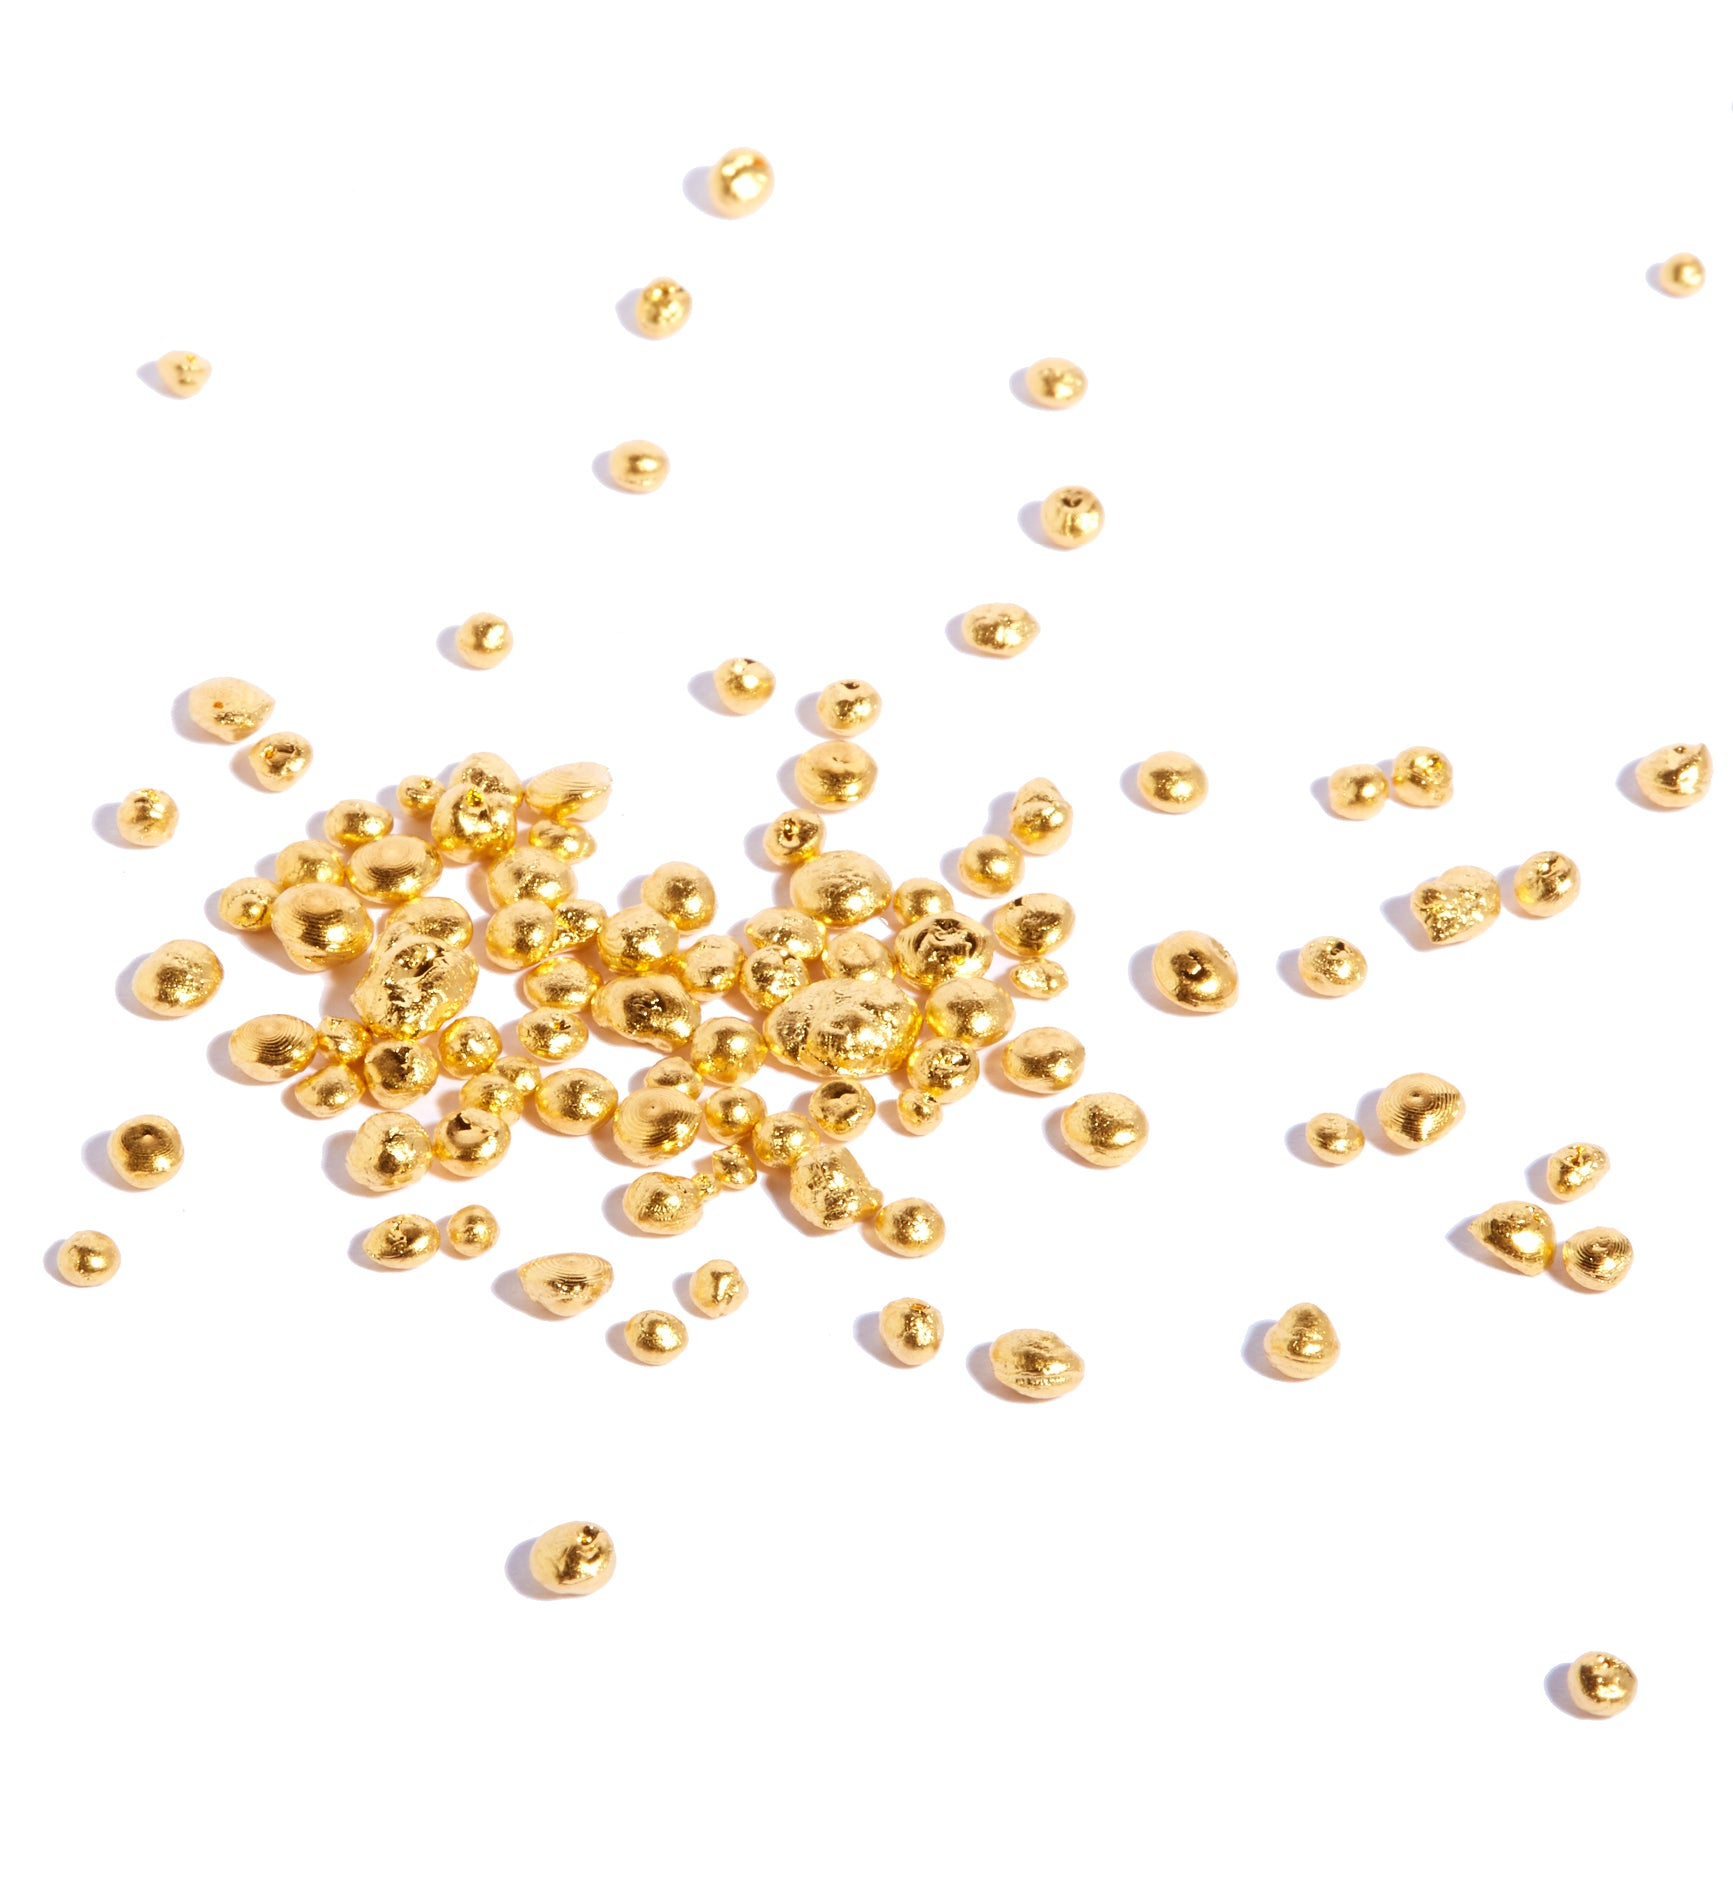 https://cdn.shopify.com/s/files/1/0571/9261/t/15/assets/gold%20granules-1509583699417.jpg?12929912989826182493